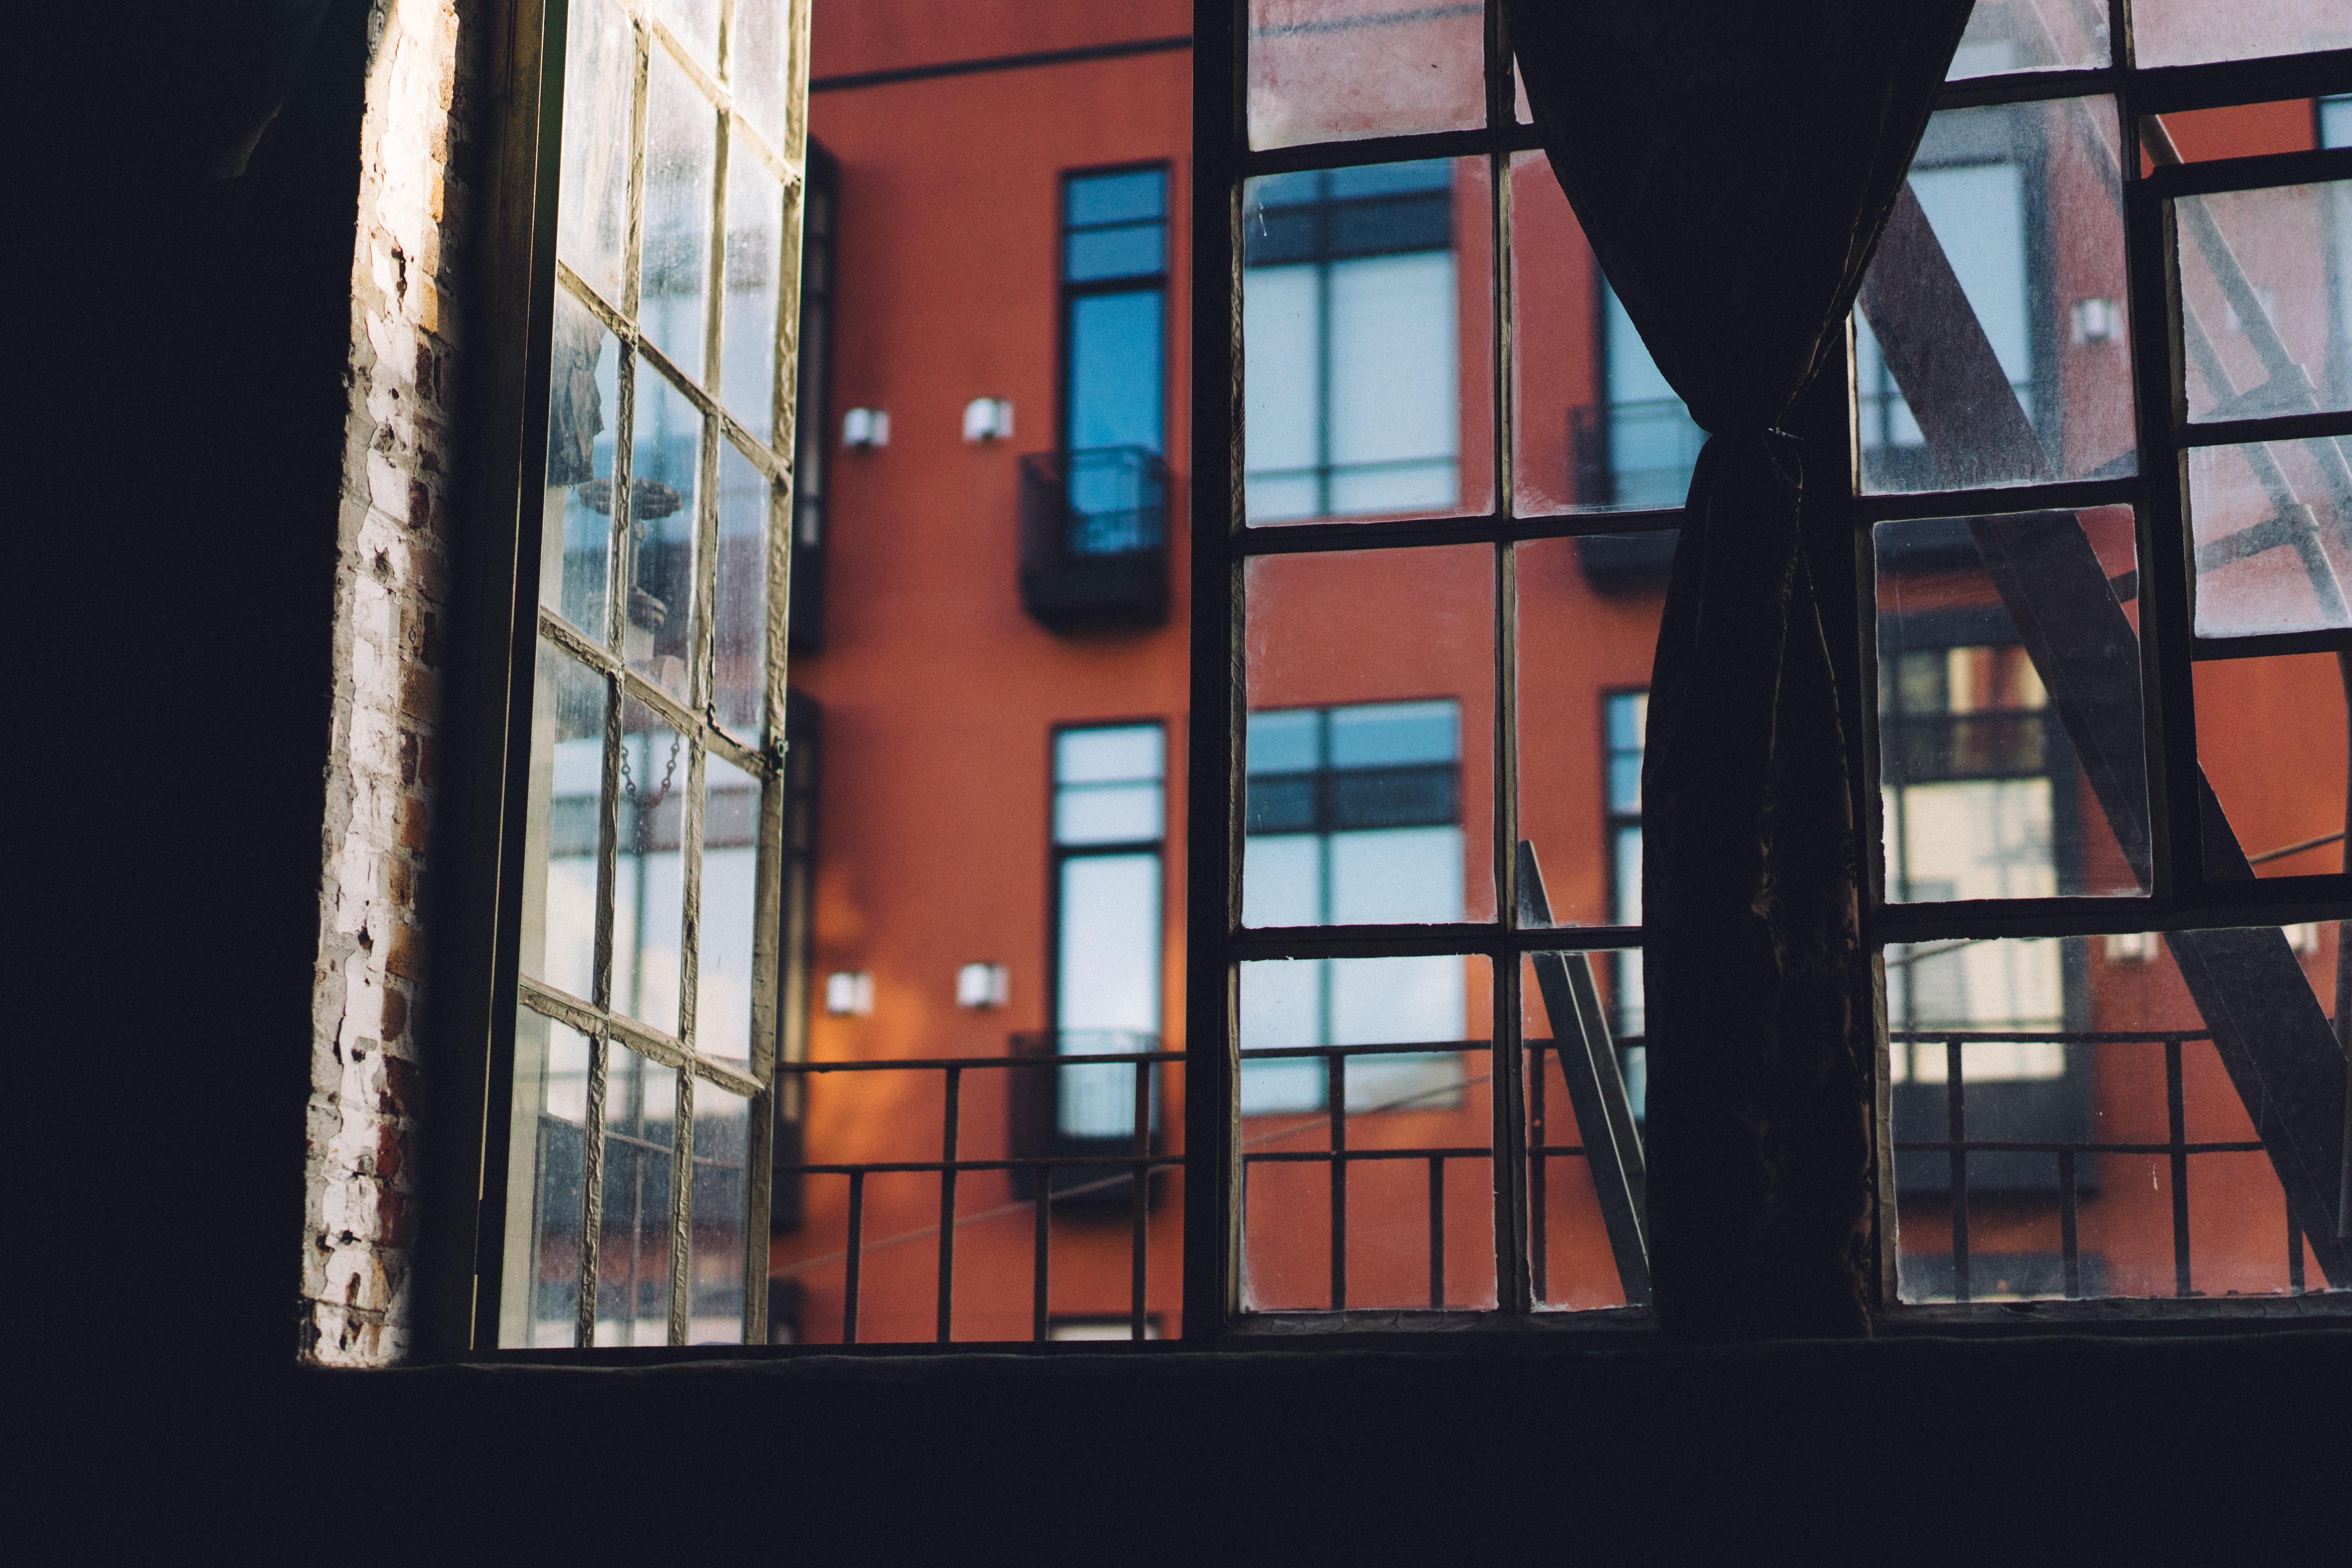 minimalist photo of glass window with building view